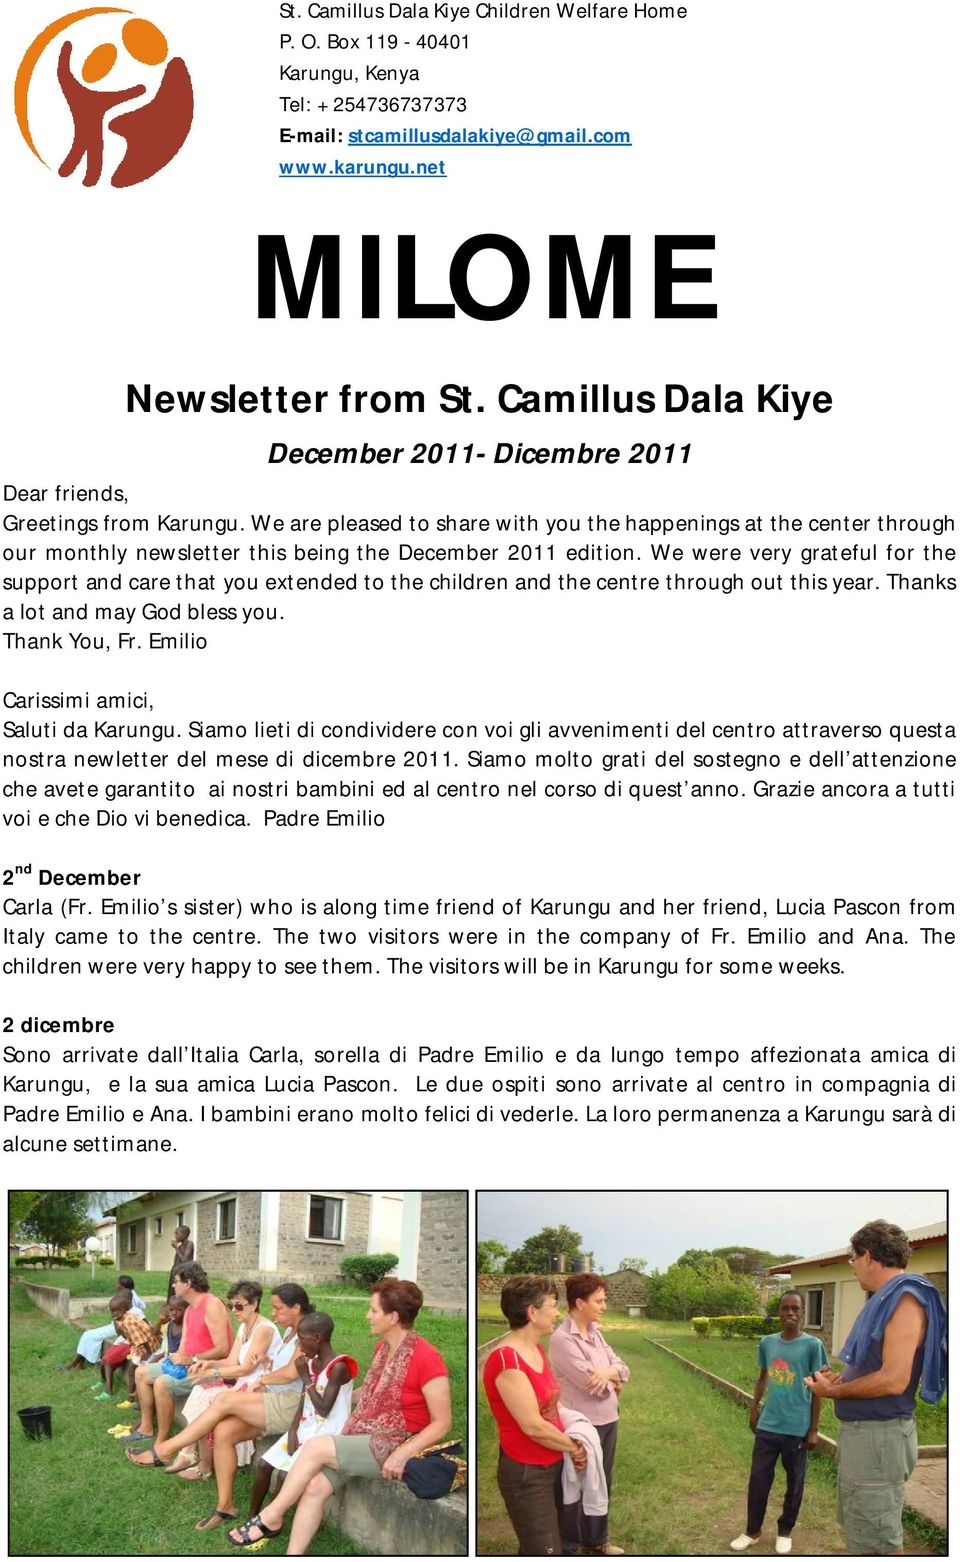 We are pleased to share with you the happenings at the center through our monthly newsletter this being the December 2011 edition.